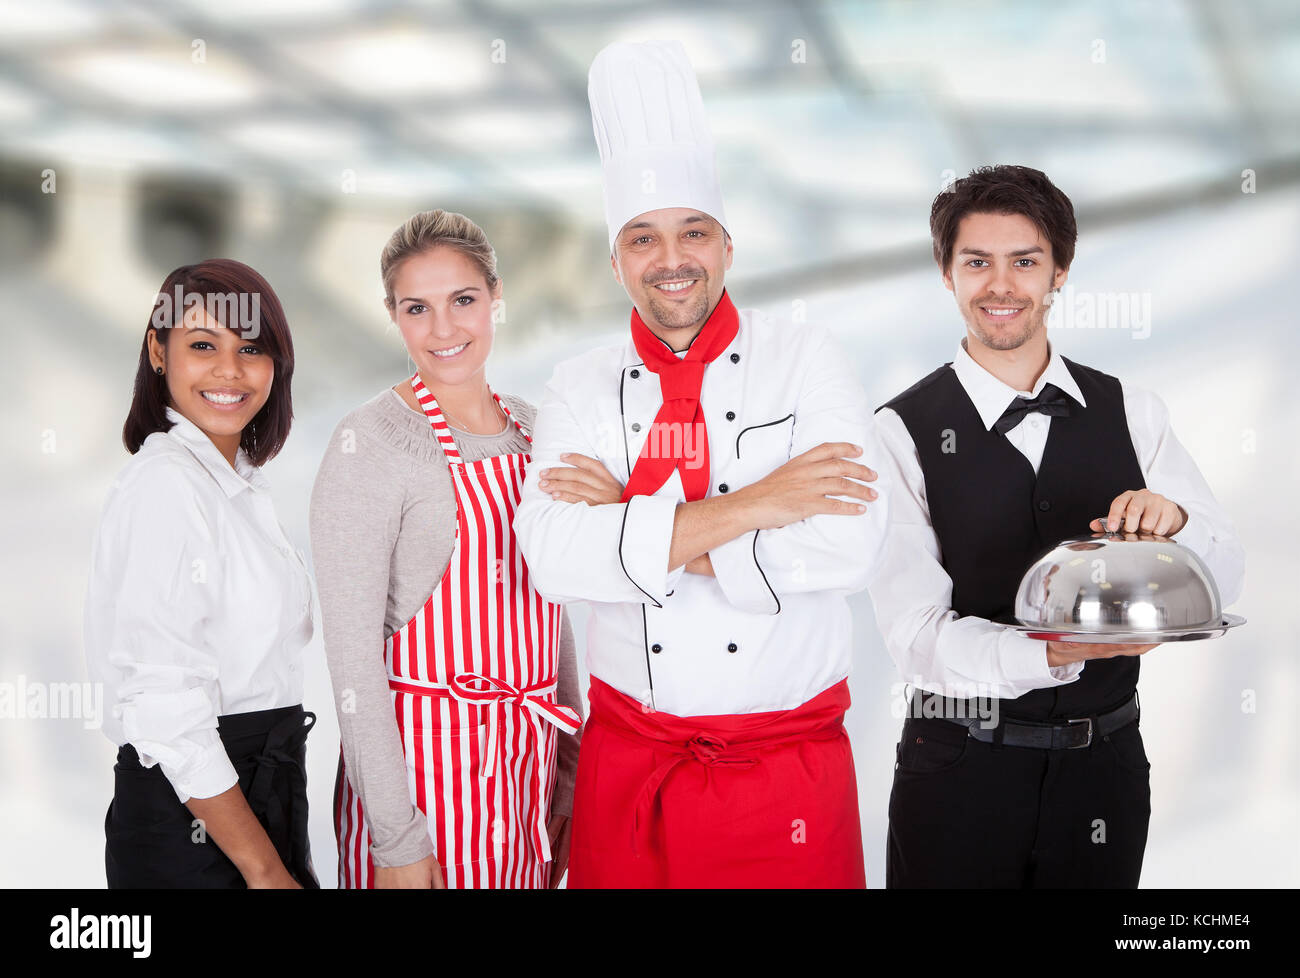 Group Of Happy Restaurant Chef And Waiters Standing Together Stock Photo Alamy